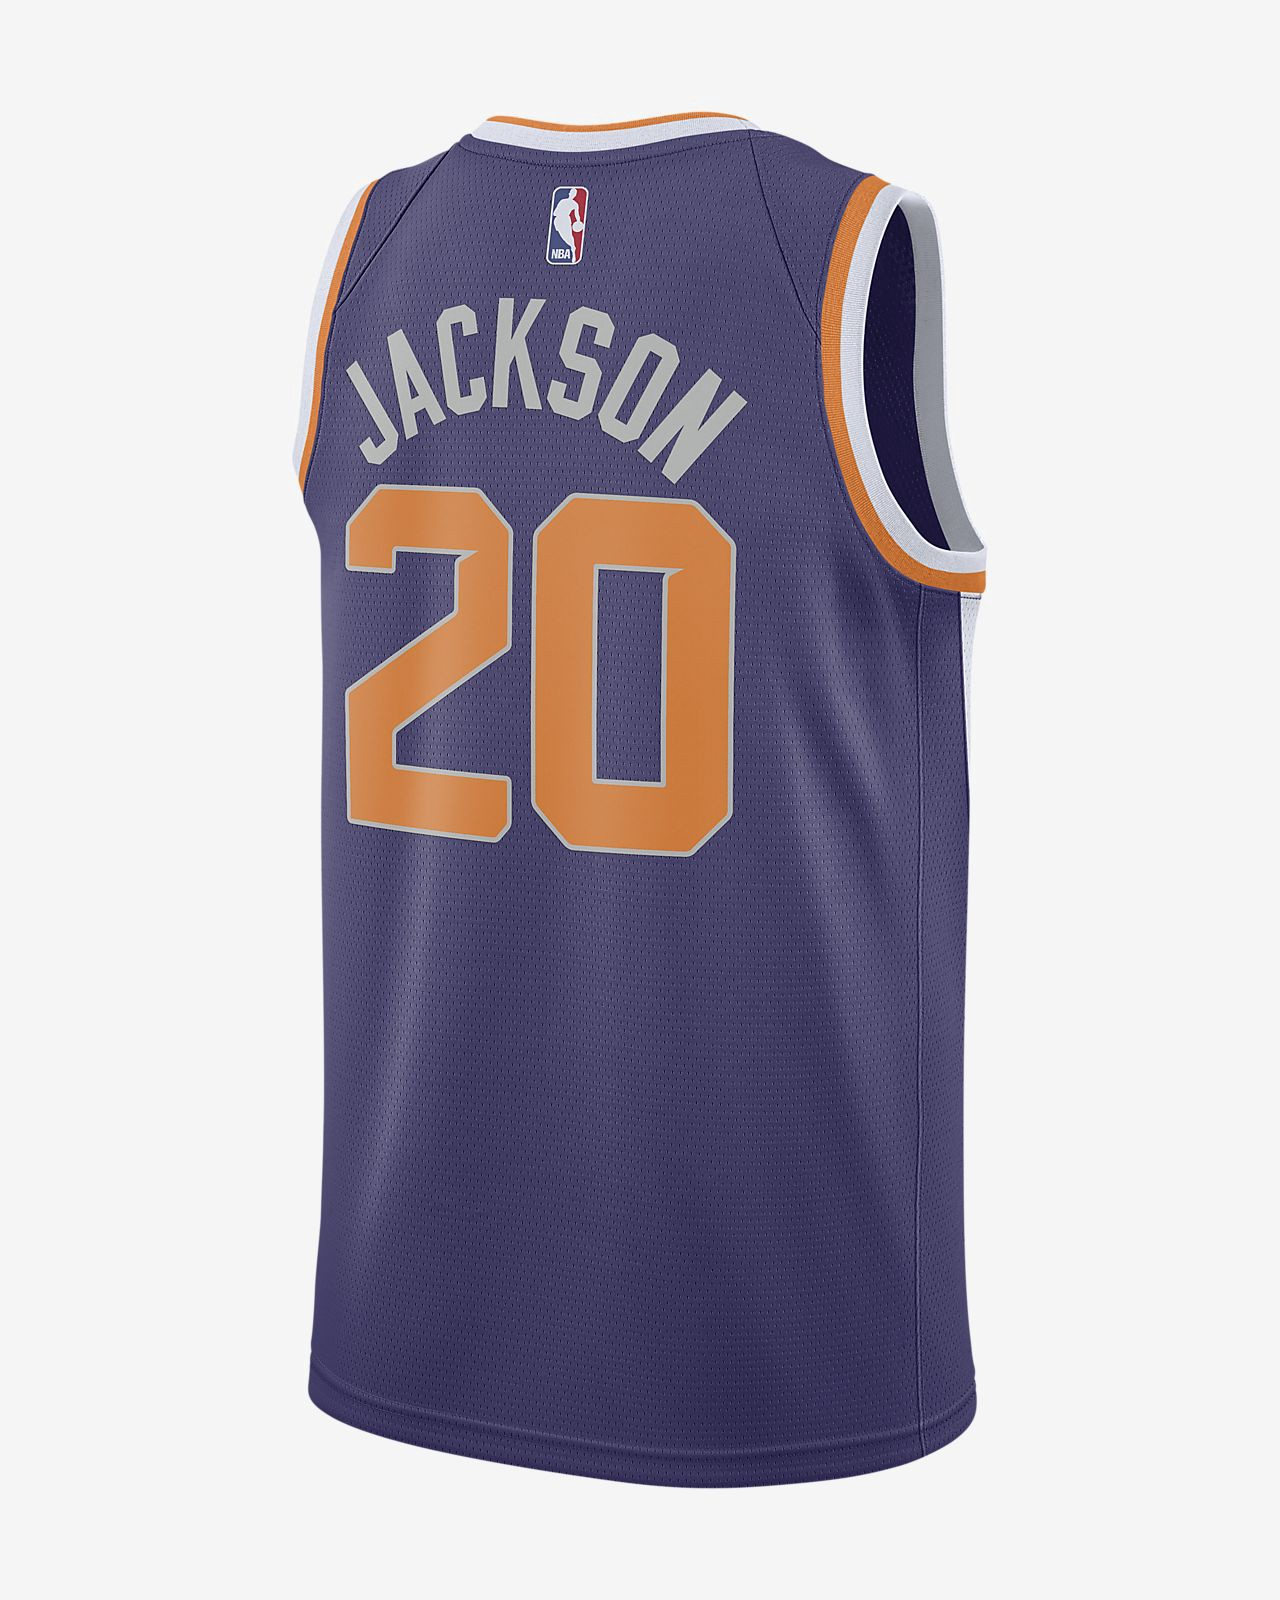 5ddb5791f694 Nike Josh Jackson Icon Edition Swingman Jersey (Phoenix Suns) Men s Nba  Connected - 2Xl (56)